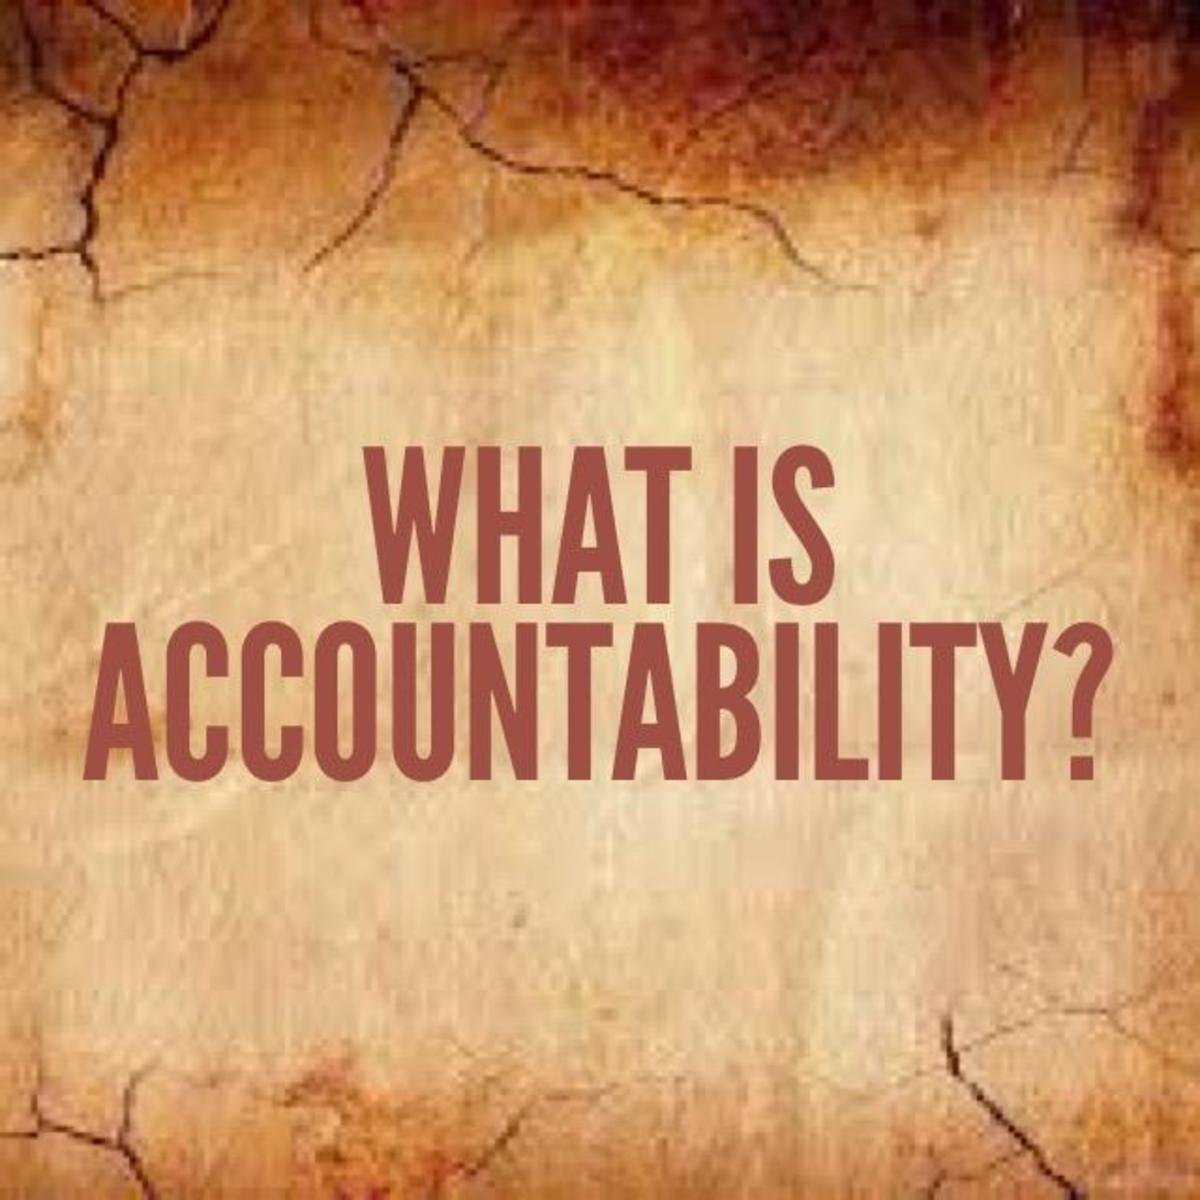 What the Bible Says About Accountability